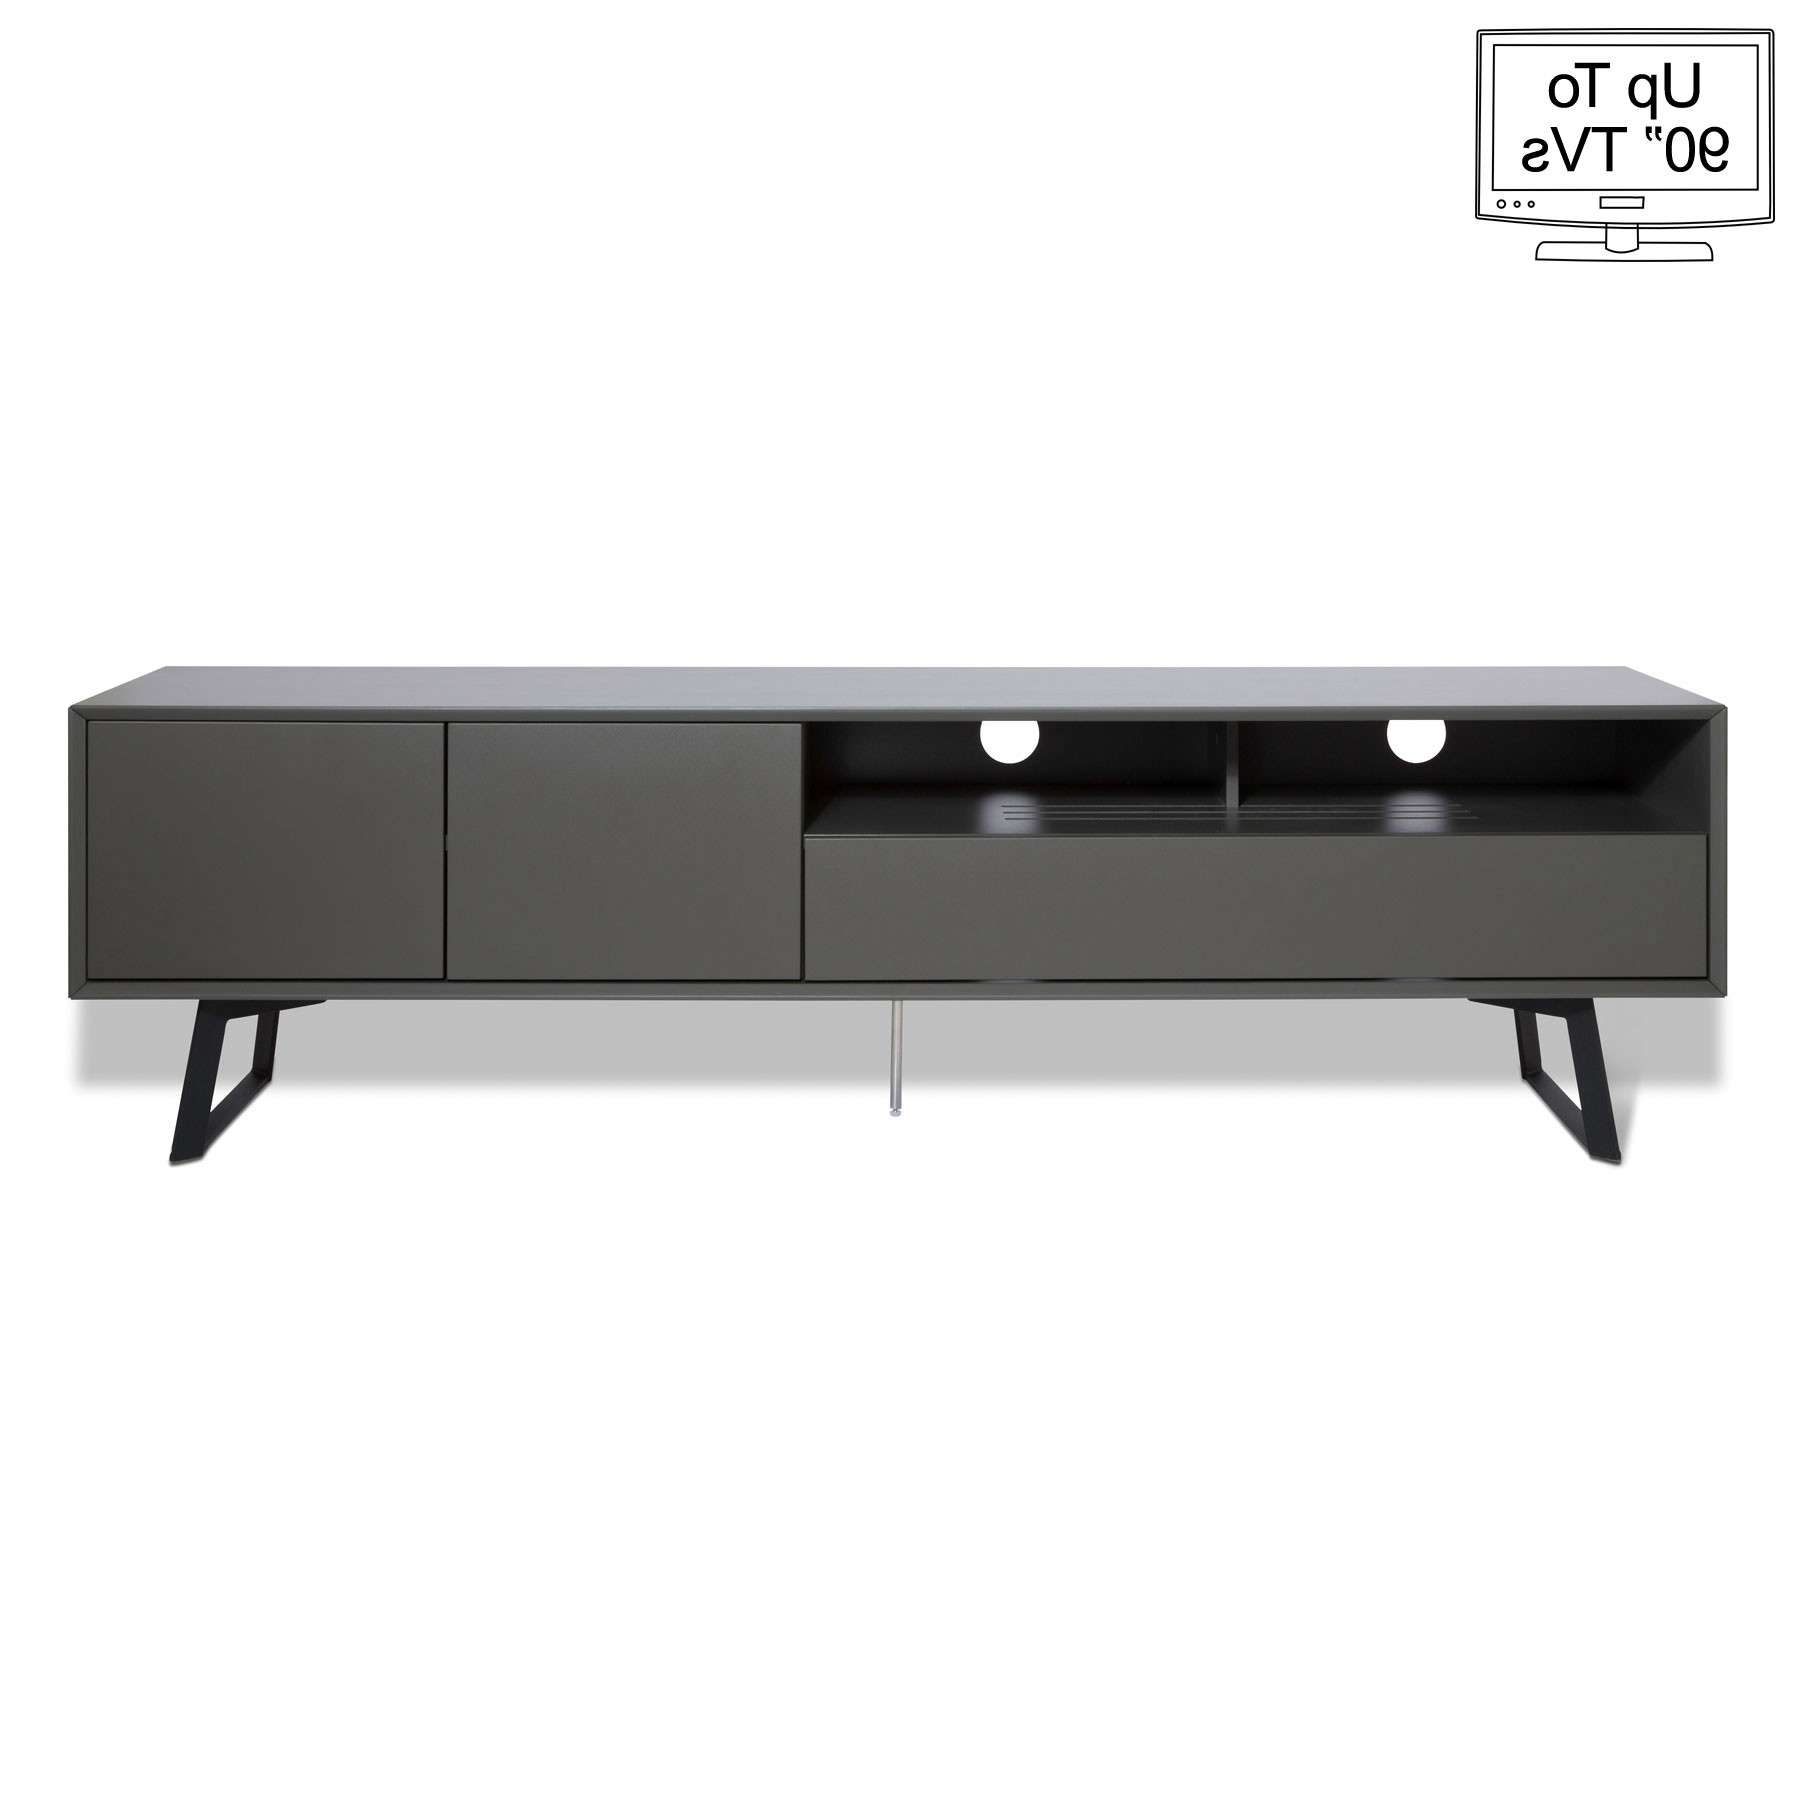 Tv Units | Tv Stands | Tv Cabinets | Tv Units With Storage Intended For Illuminated Tv Stands (View 20 of 20)